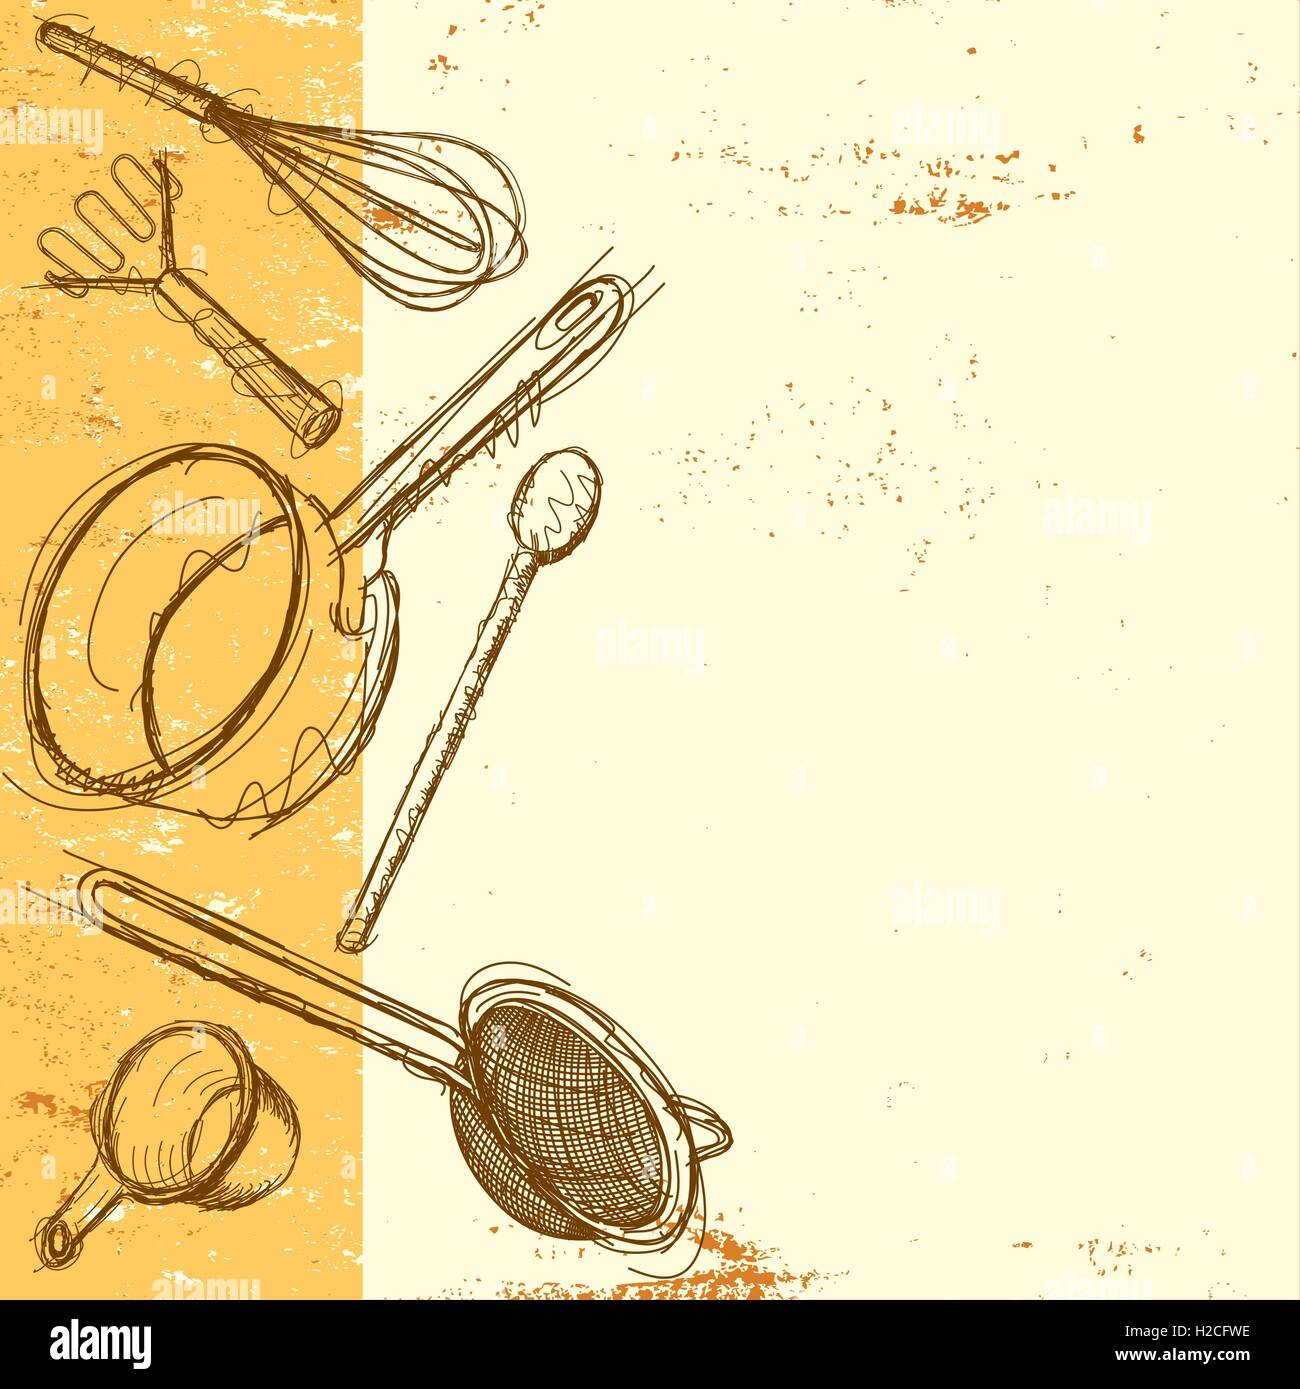 Kitchen Background Design: Cooking Utensil Background Sketchy, Hand Drawn Kitchen